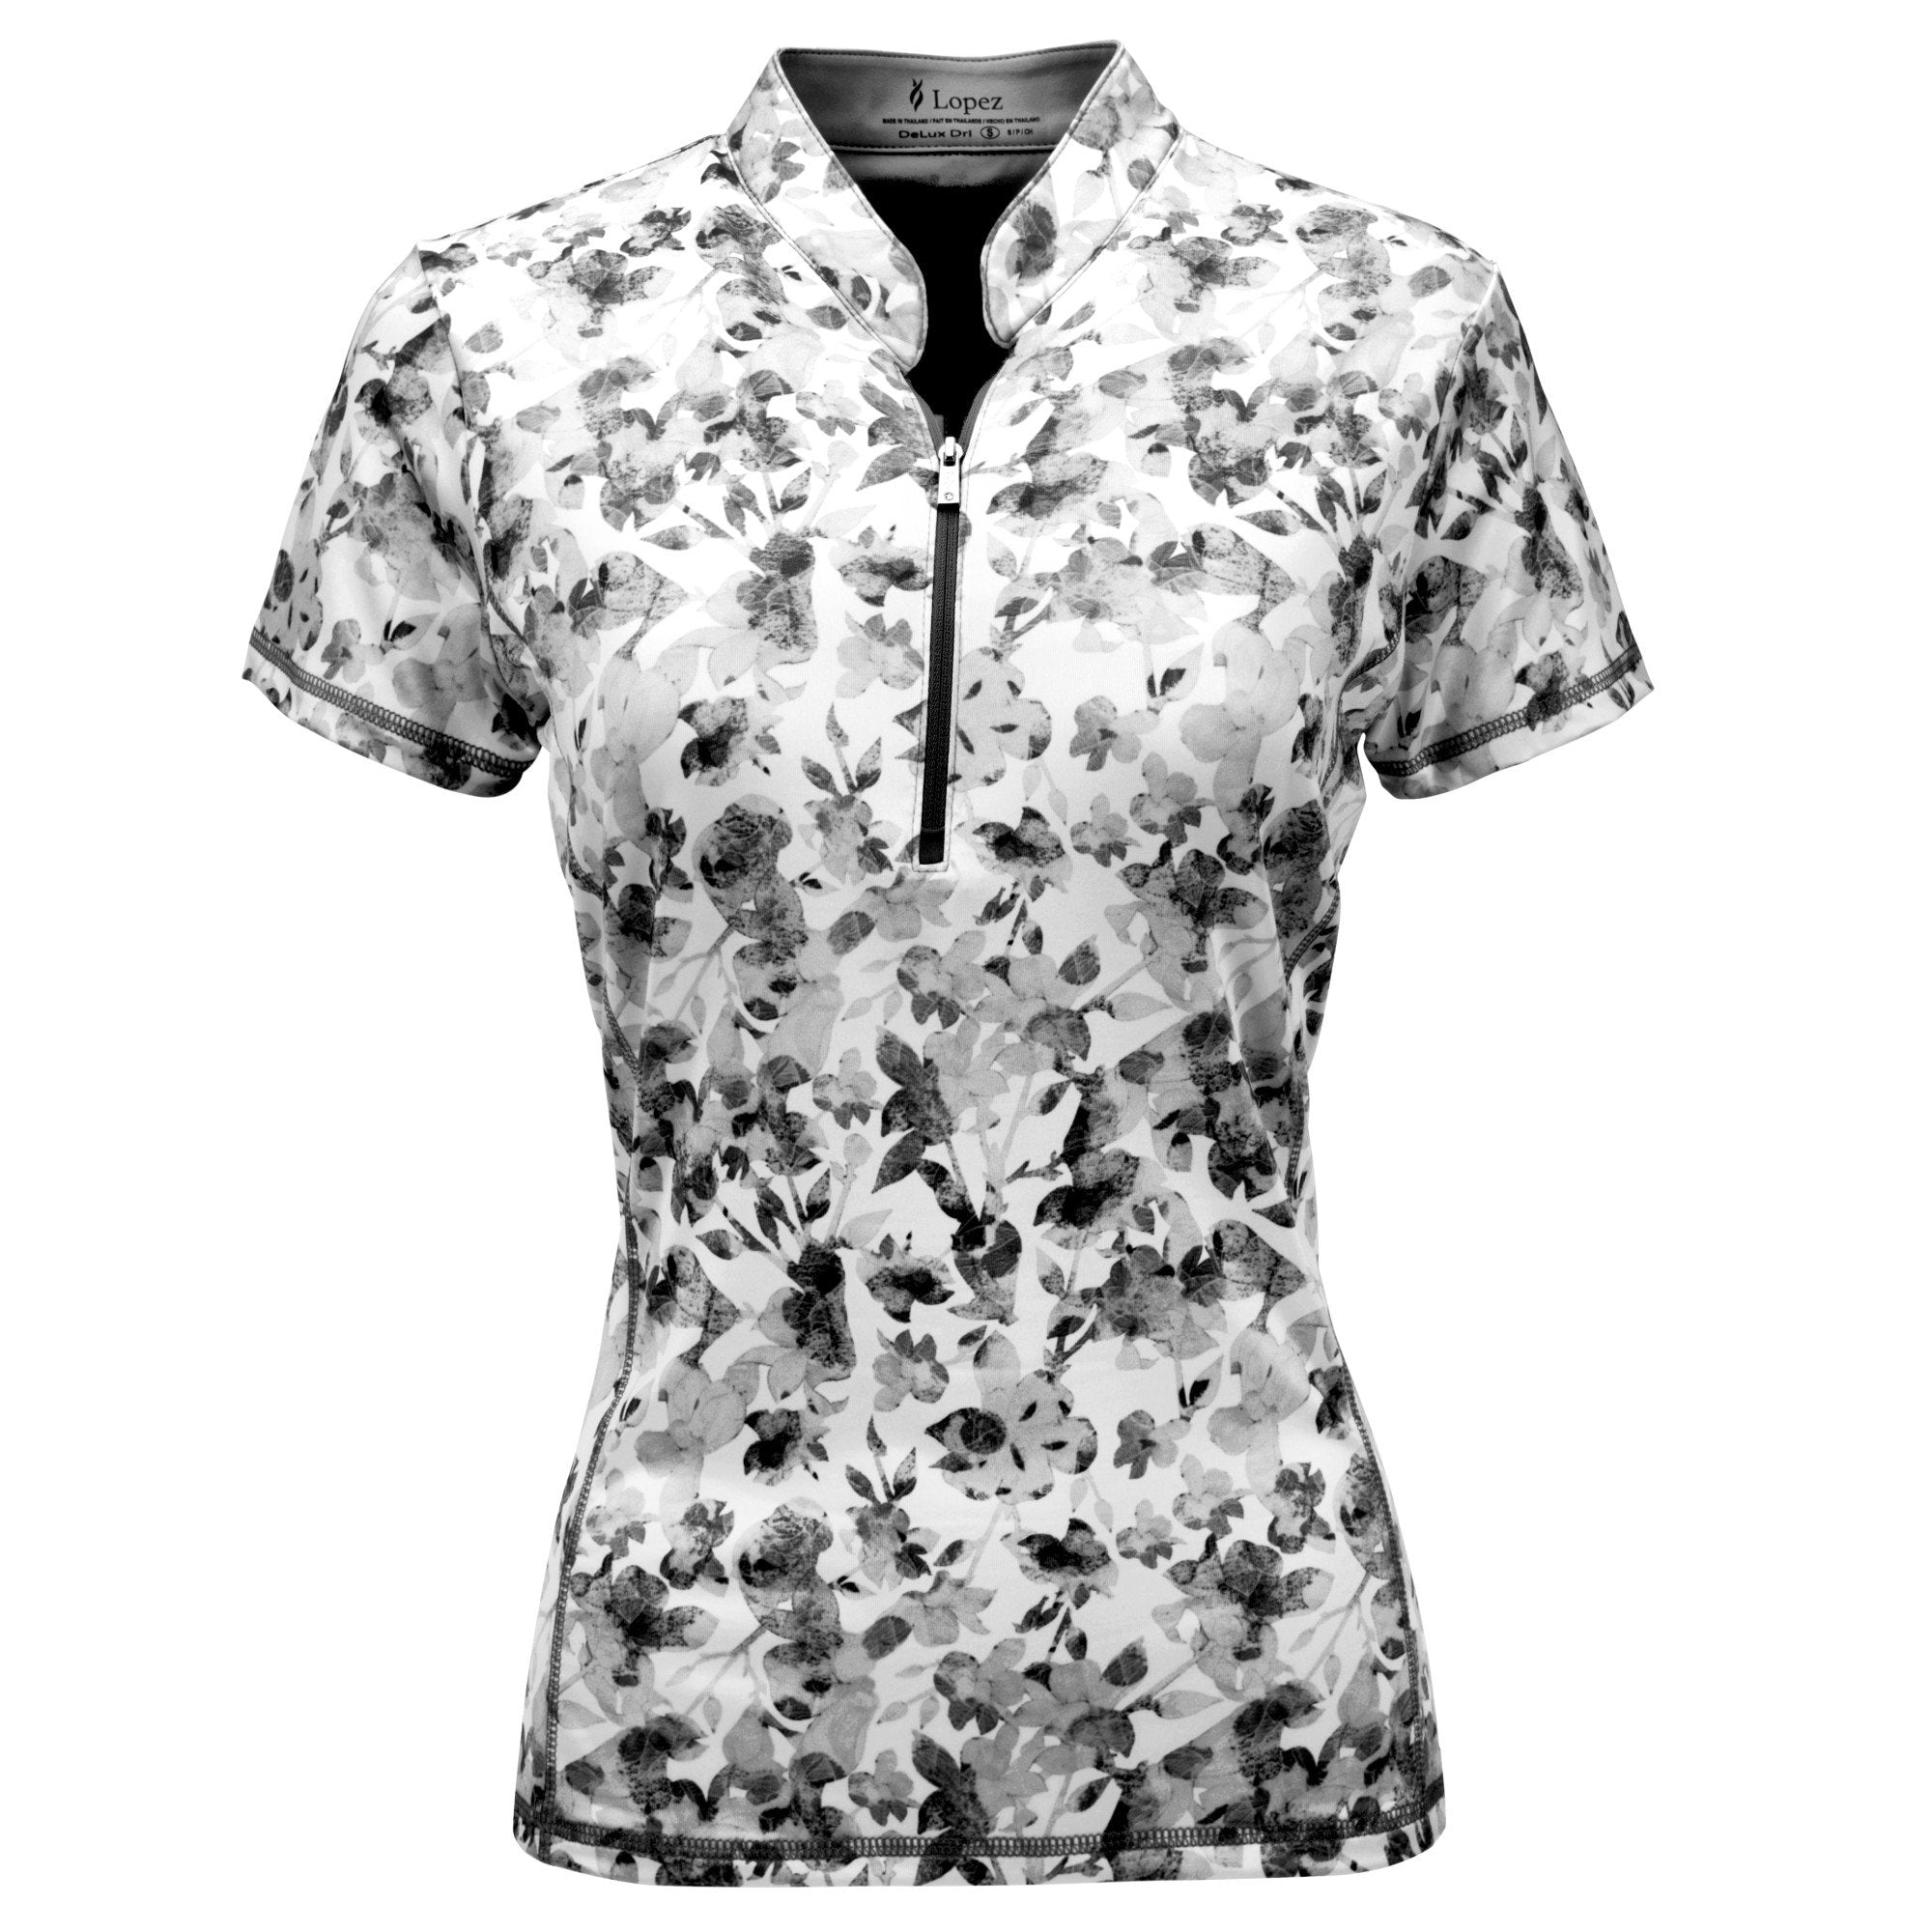 Nancy Lopez Glimmer Short Sleeve Polo Black Multi